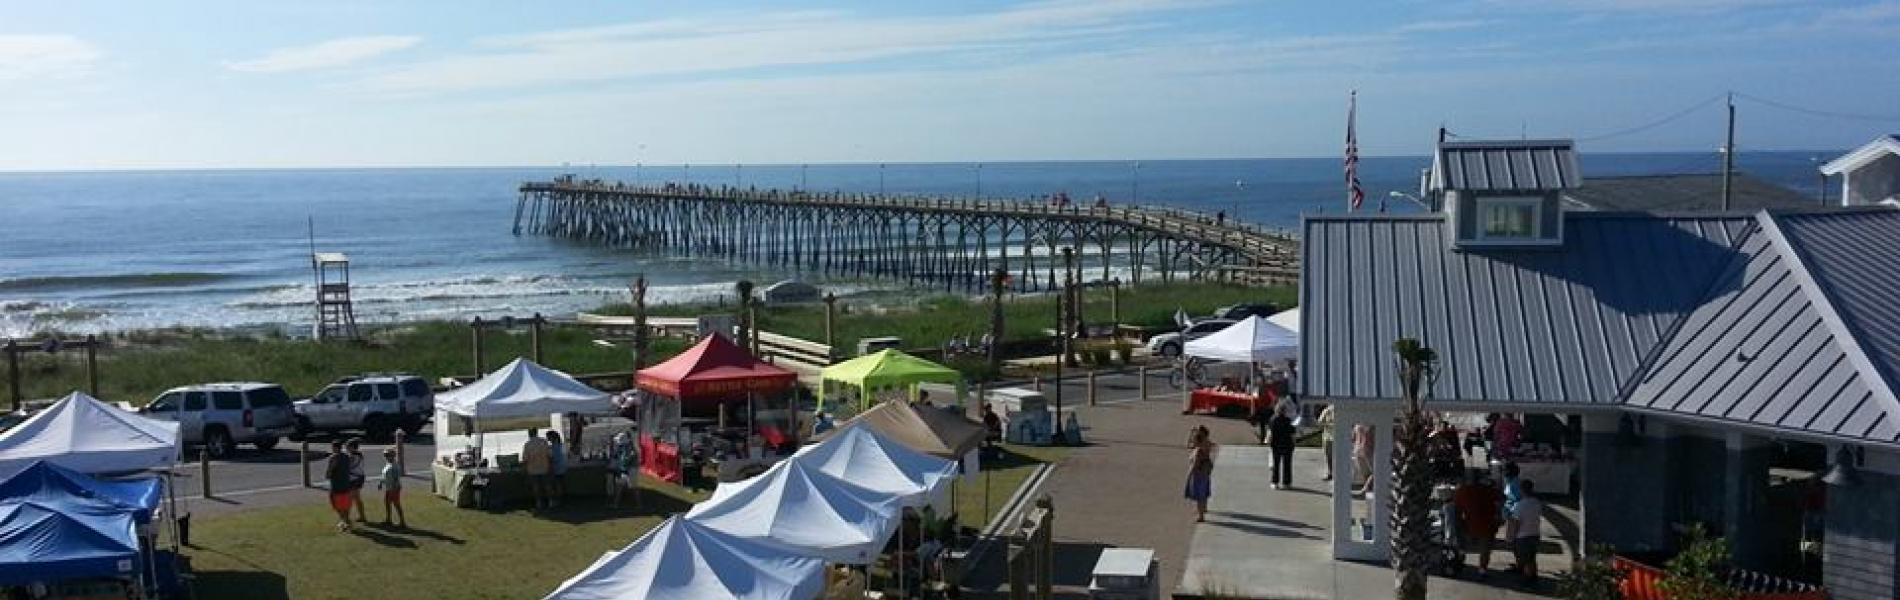 Ariel view of the Ocean Front Park with vendor booths